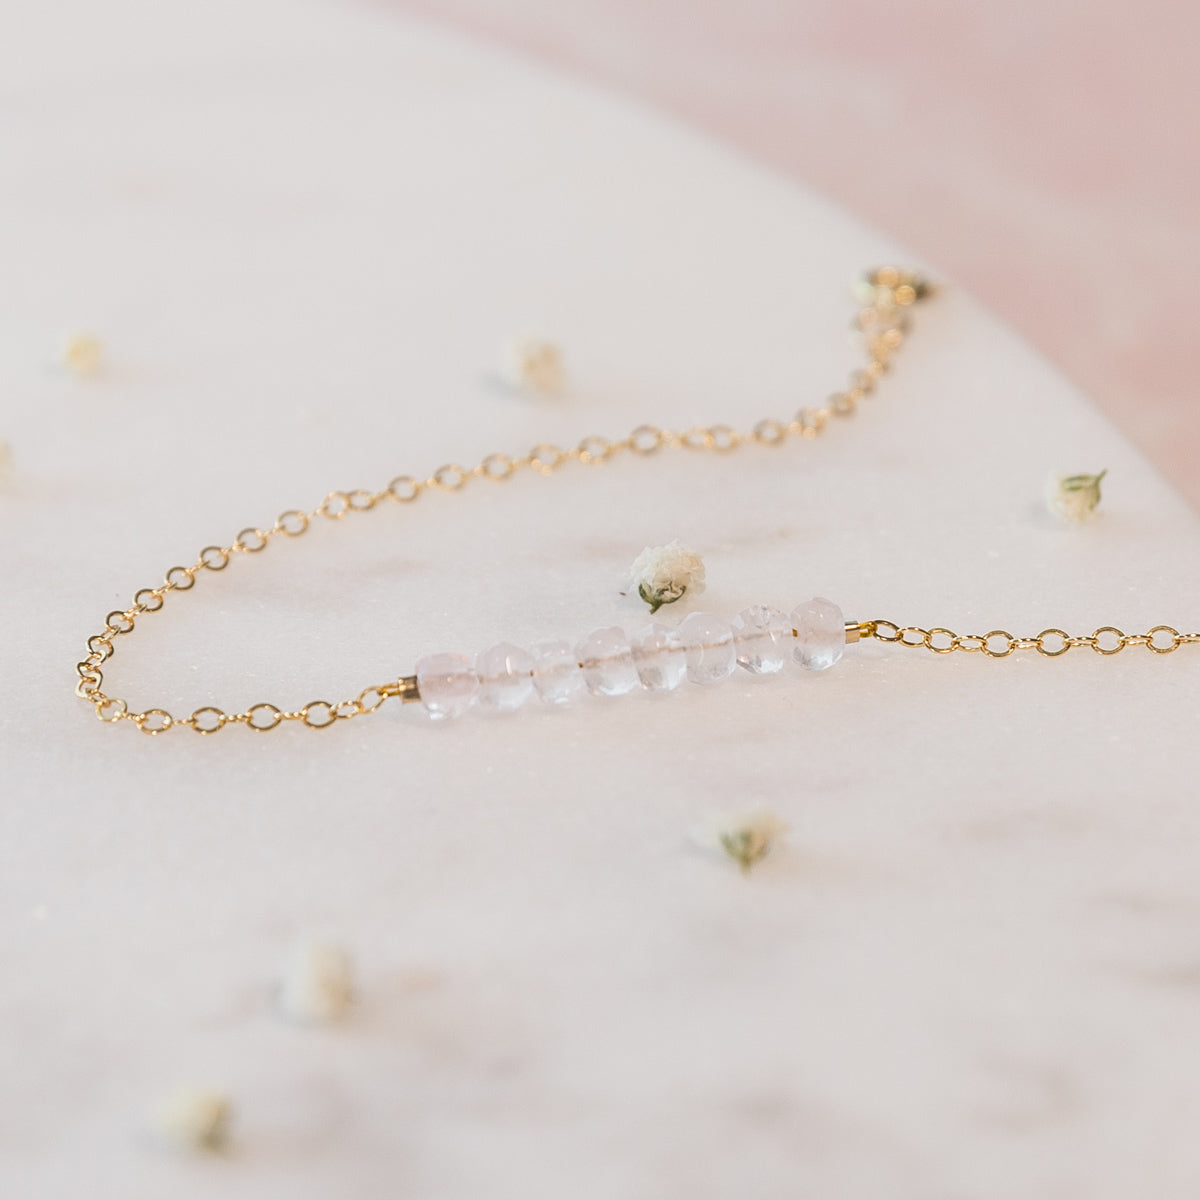 Rose Quartz Bracelet, Bridal Party Jewelry, Healing Crystal Jewelry, Dainty Rose Quartz Necklace, Minimal Necklace, Bohemian, Crystal Jewelry, Gemstone Necklace, Liz.Beth Jewelry Co.